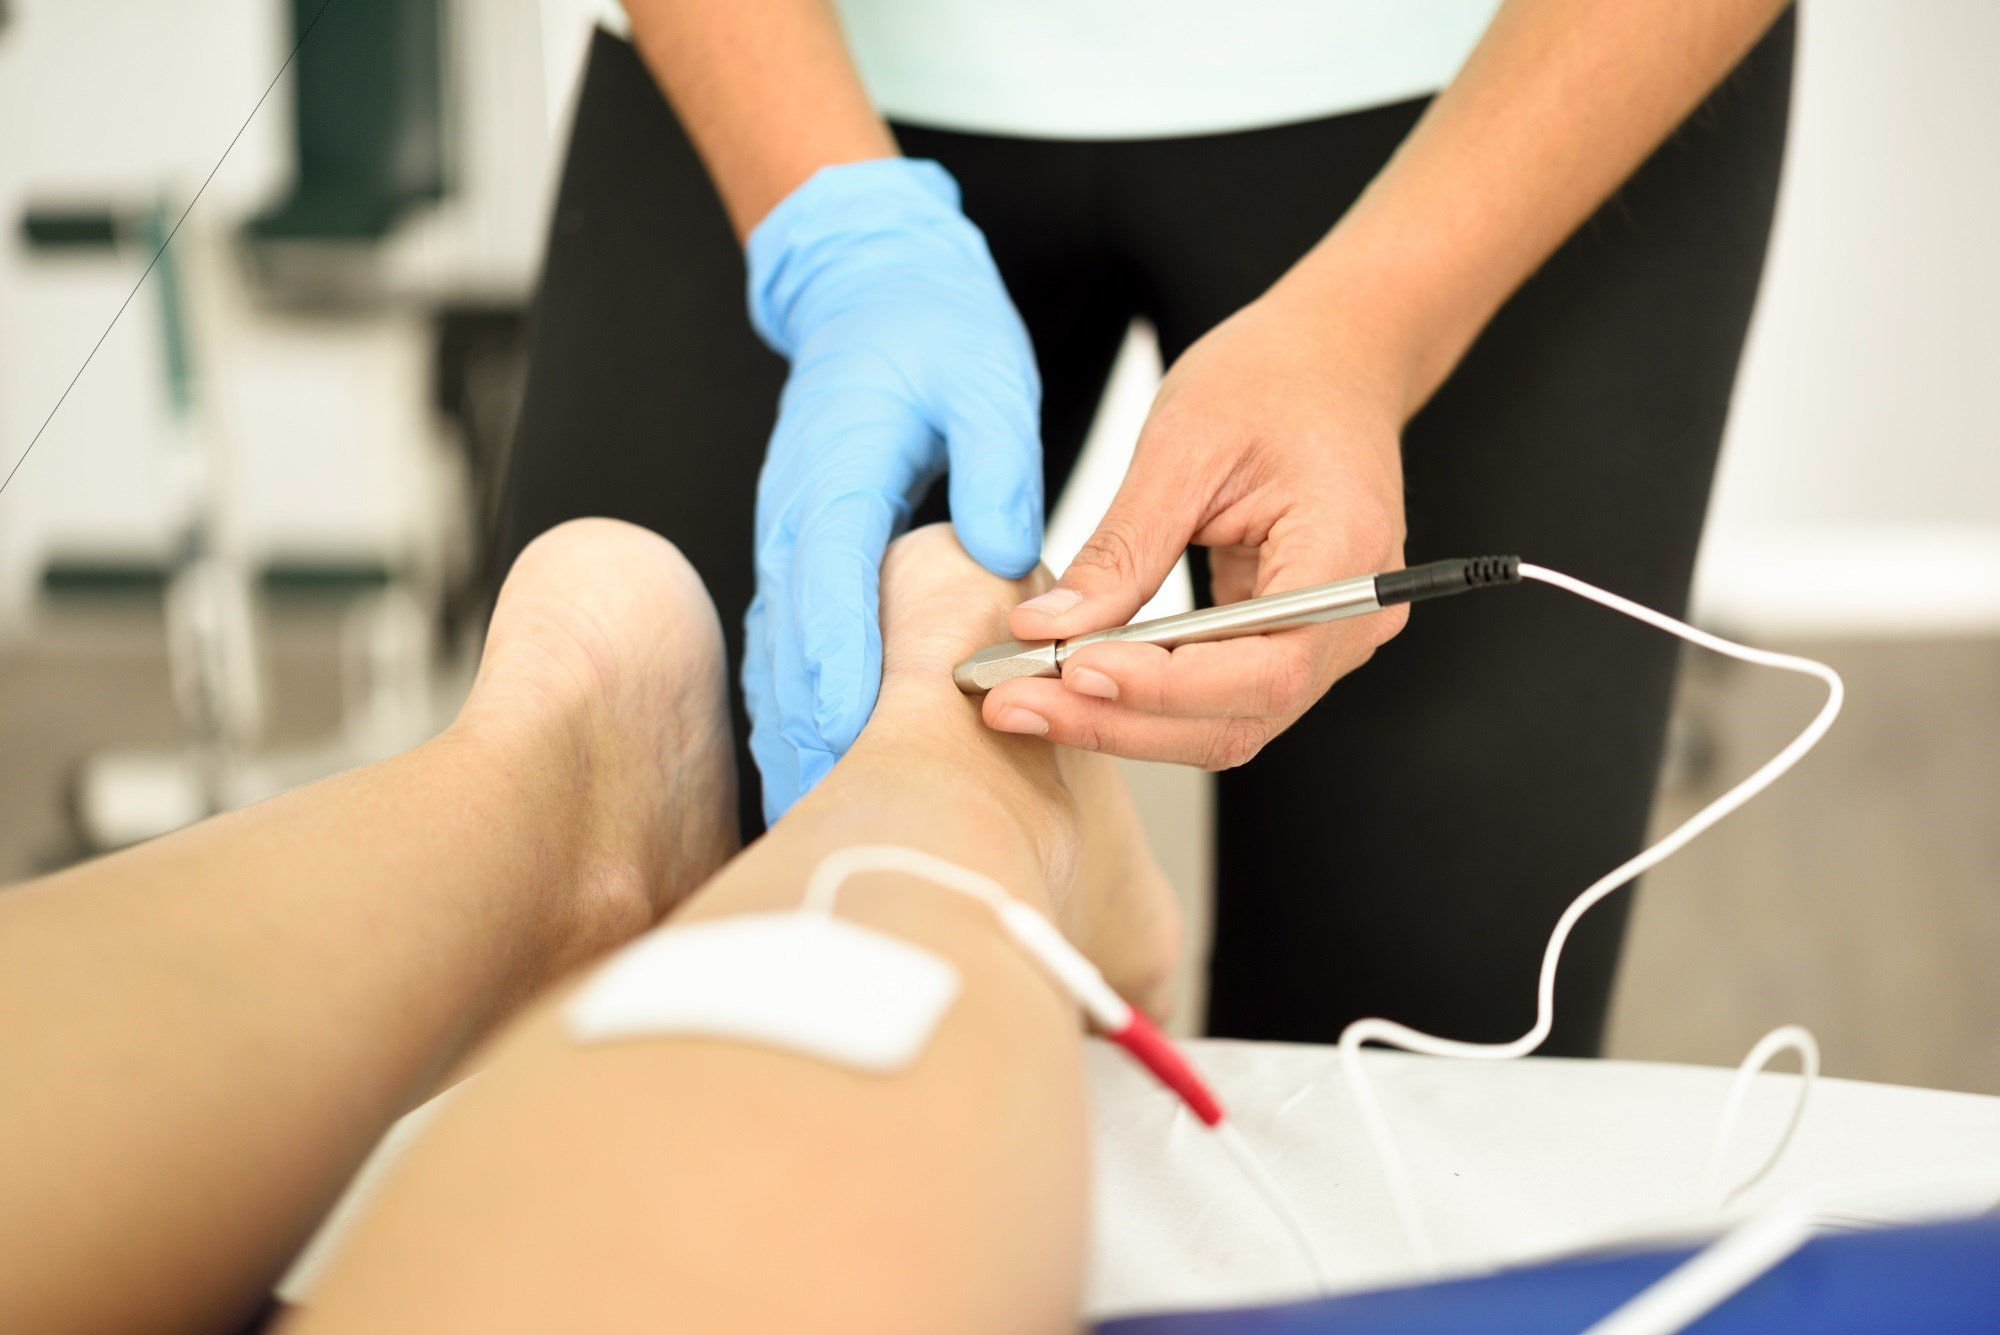 Treating Painful Diabetic Peripheral Neuropathy With Electroacupuncture